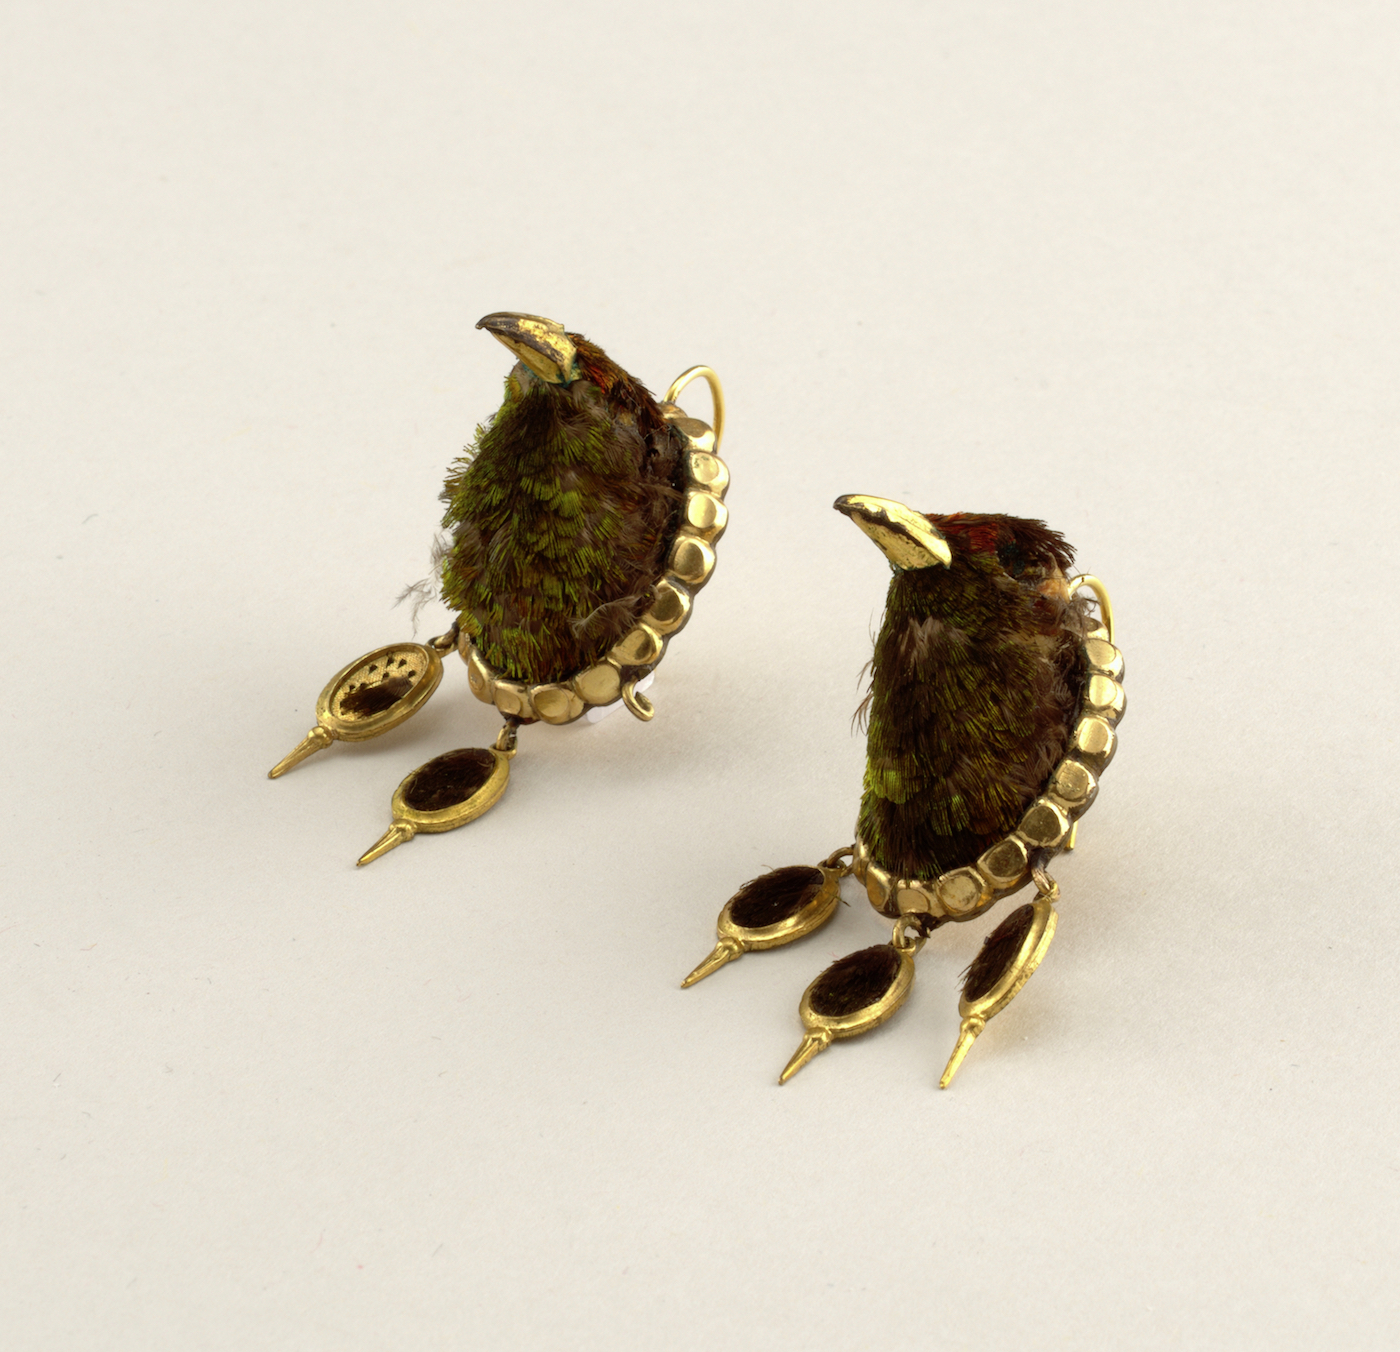 Late 19th century earrings with real hummingbird heads